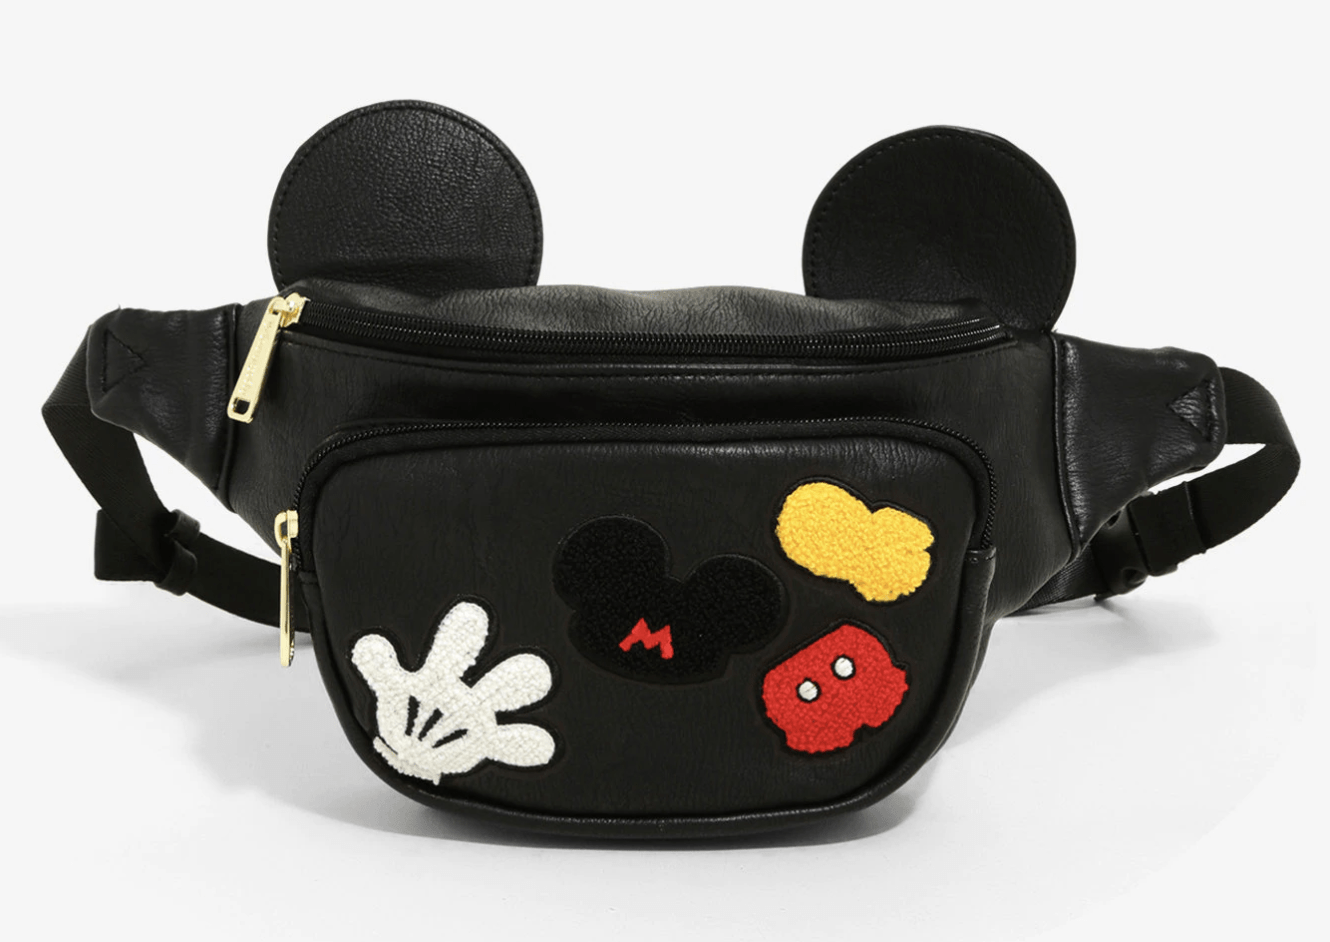 Fanny Packs Are Back in Fashion 18